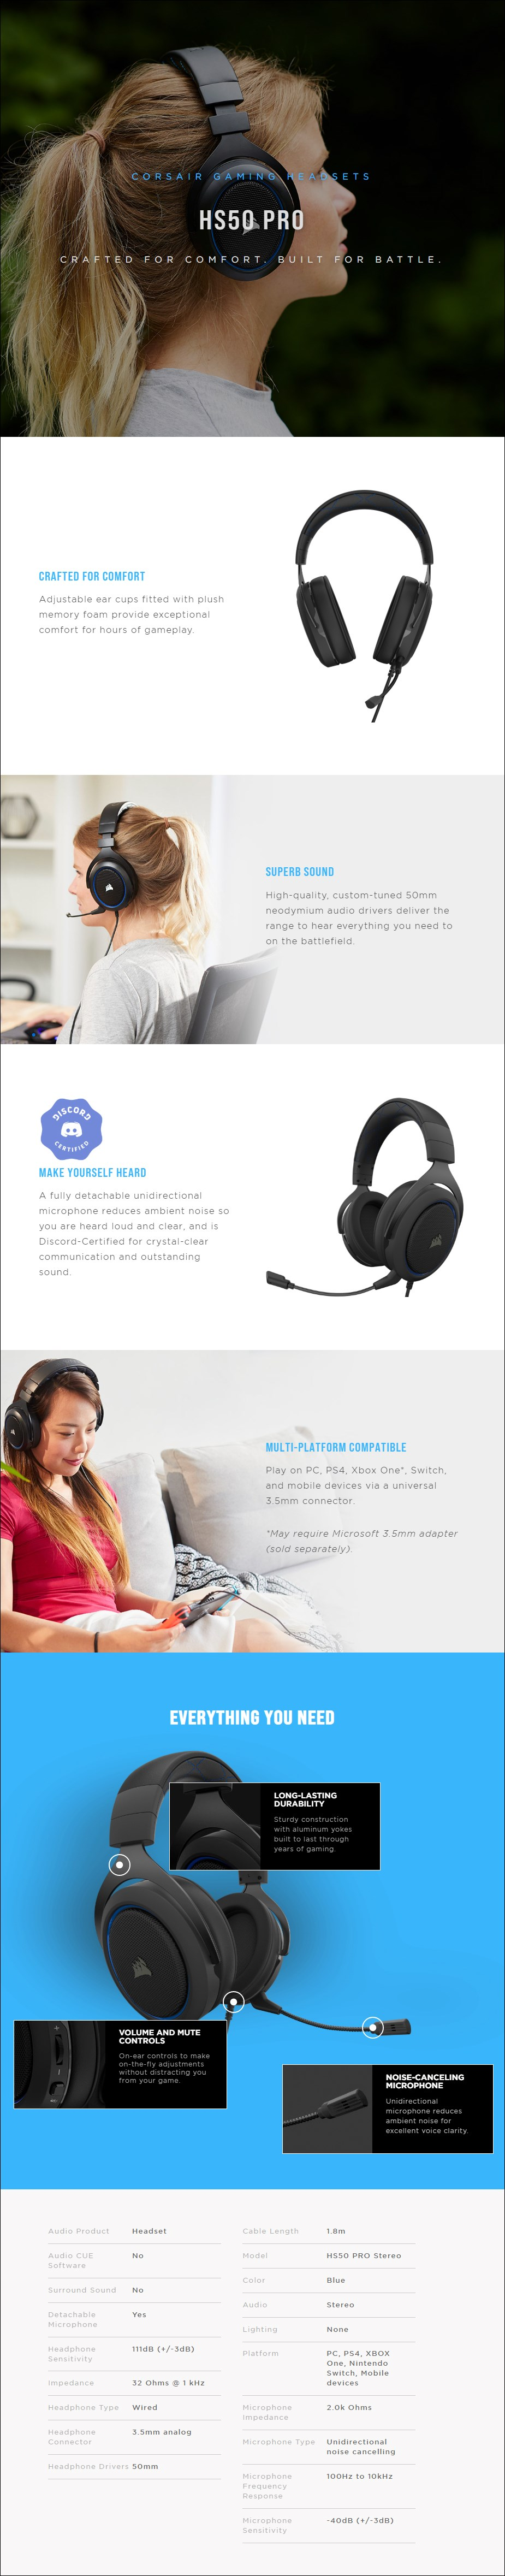 Corsair HS50 PRO Stereo Gaming Headset - Blue - Overview 1